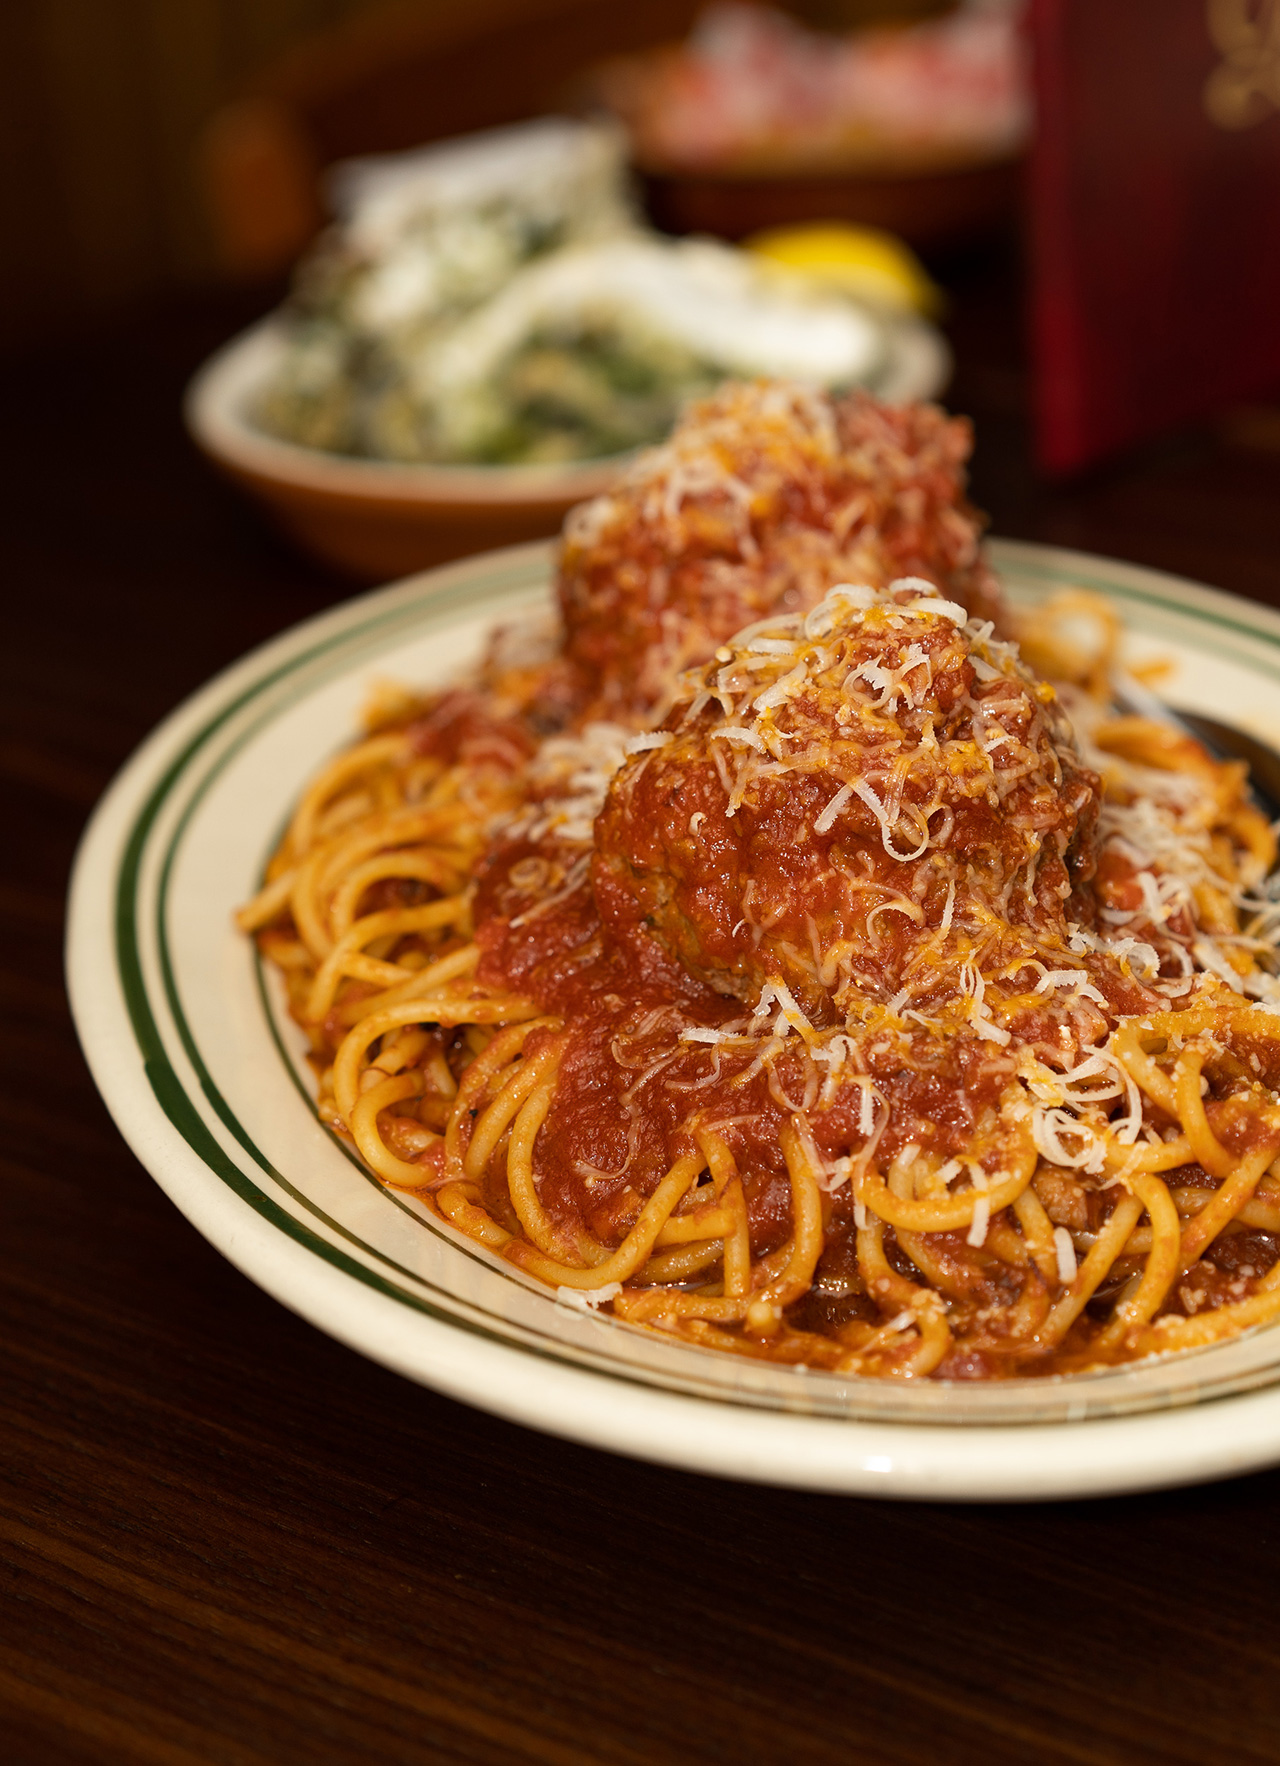 Classic Spaghetti and Meatballs.